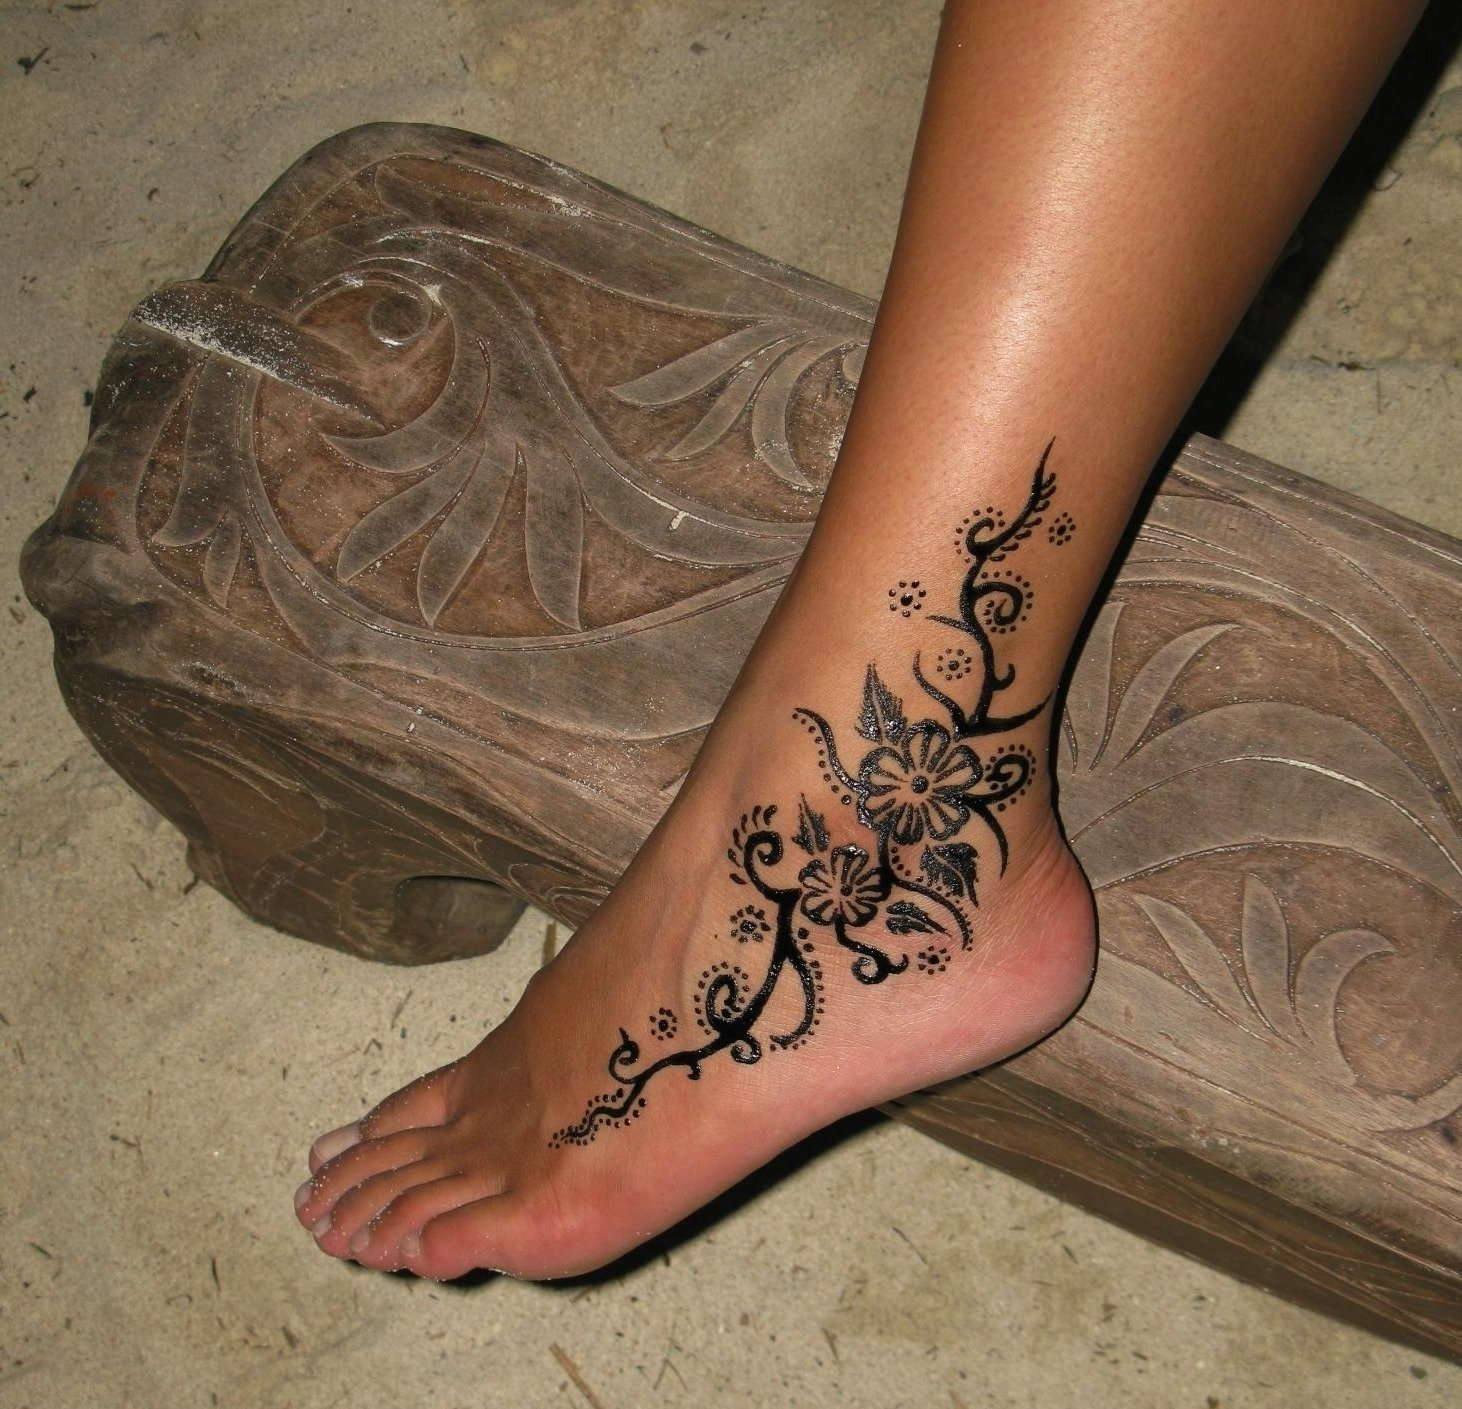 10 Great Ankle Tattoo Cover Up Ideas amazing ankle tattoos best tattoo design